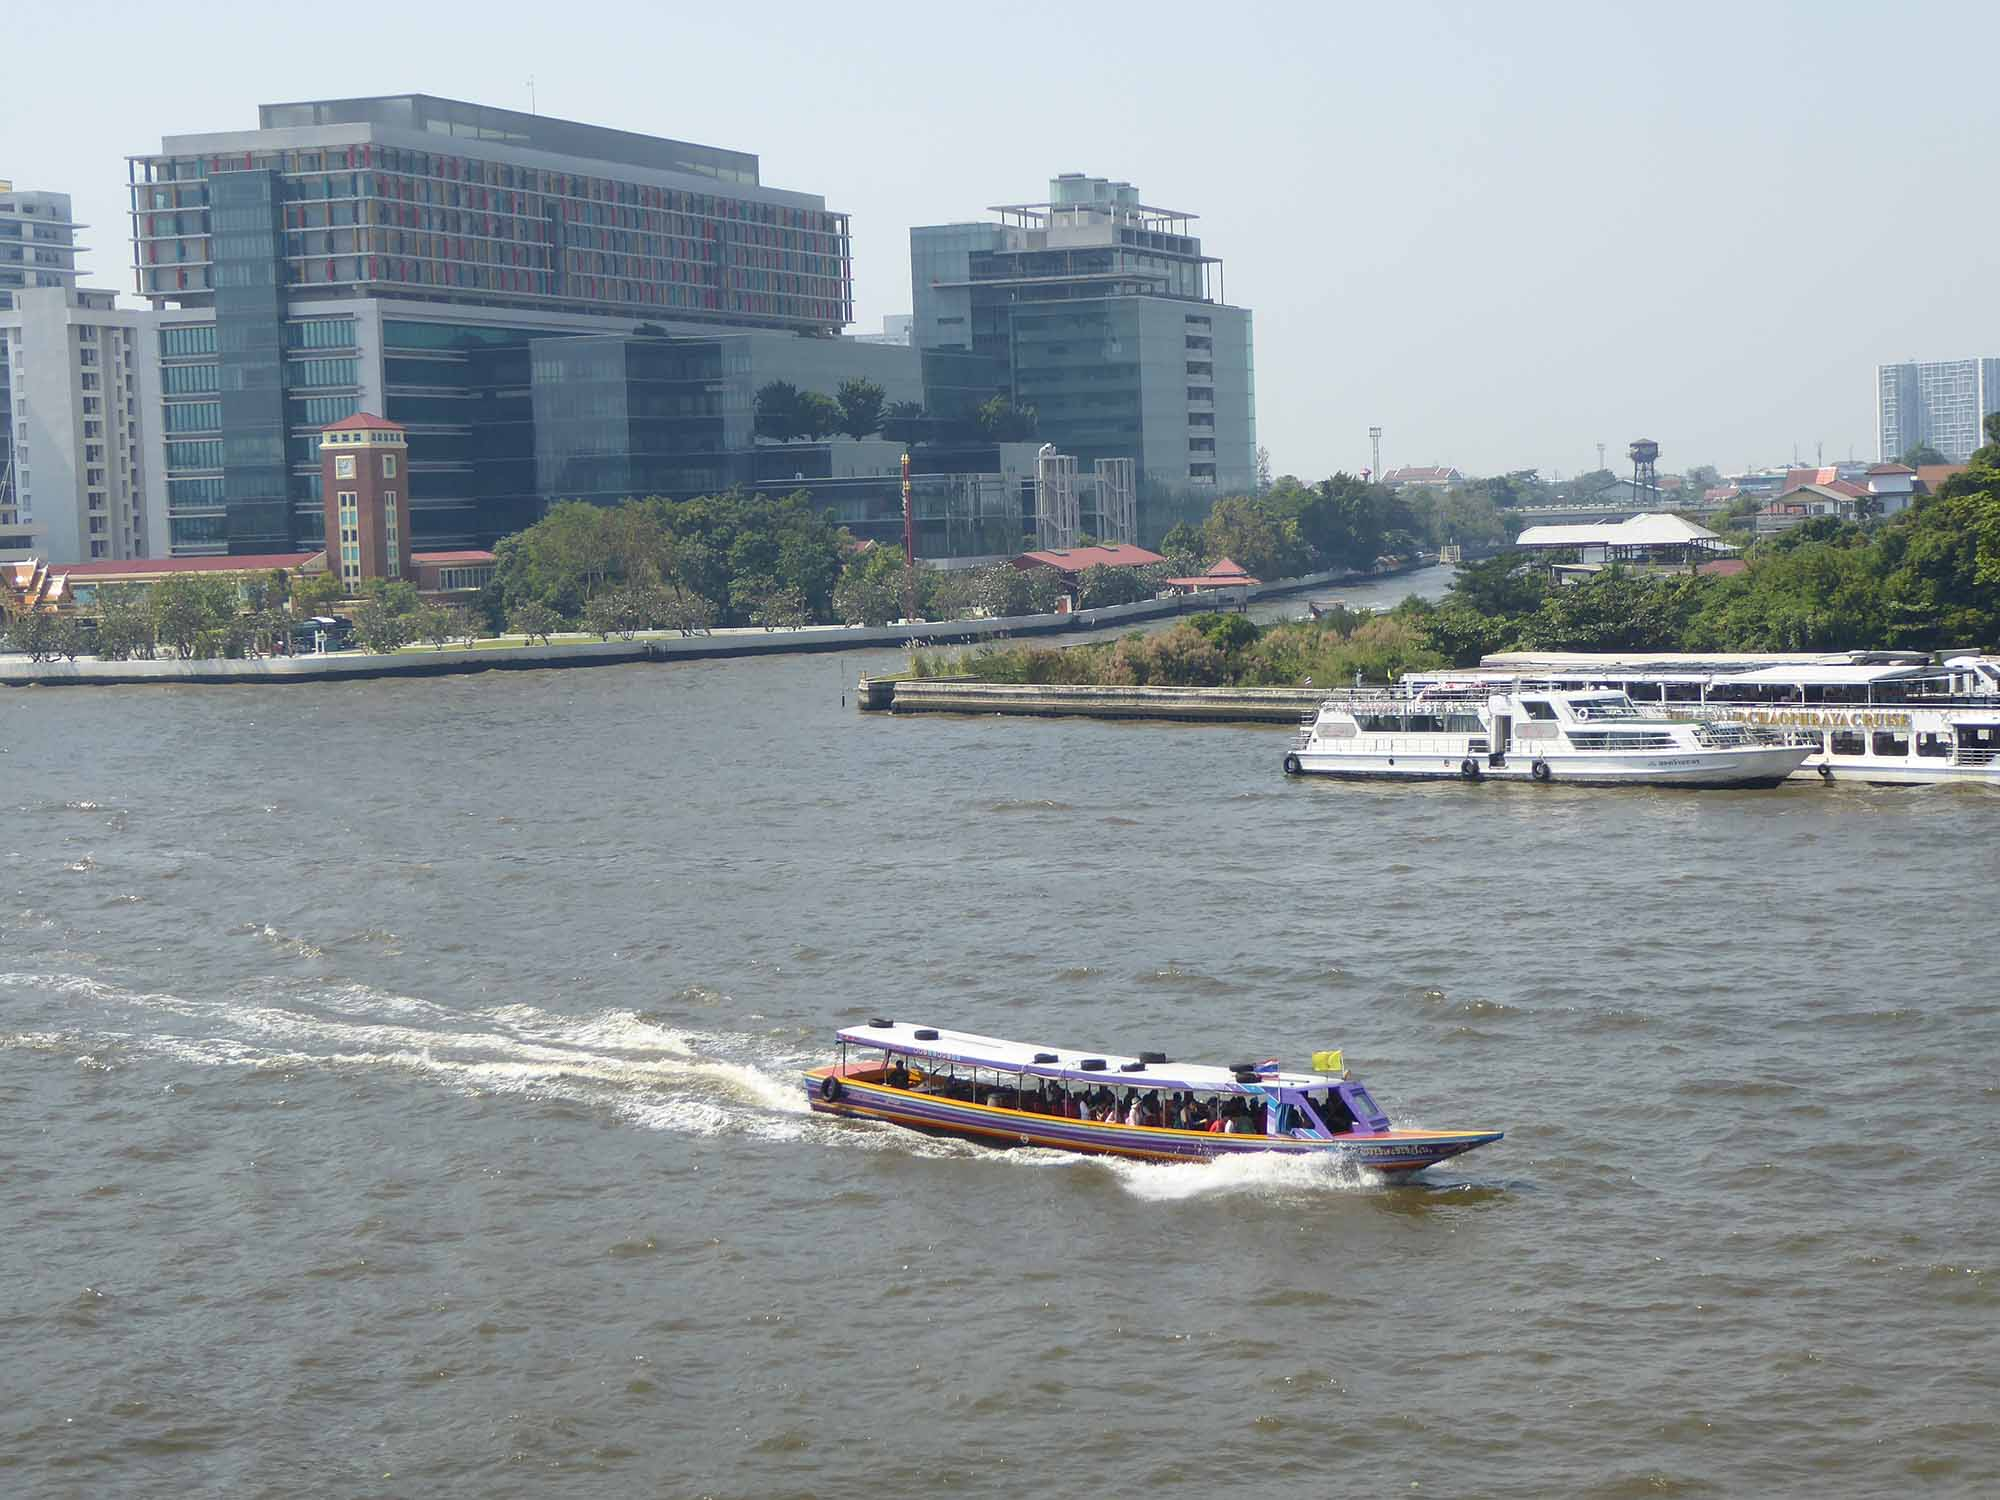 The Chao Phraya River Bangkok